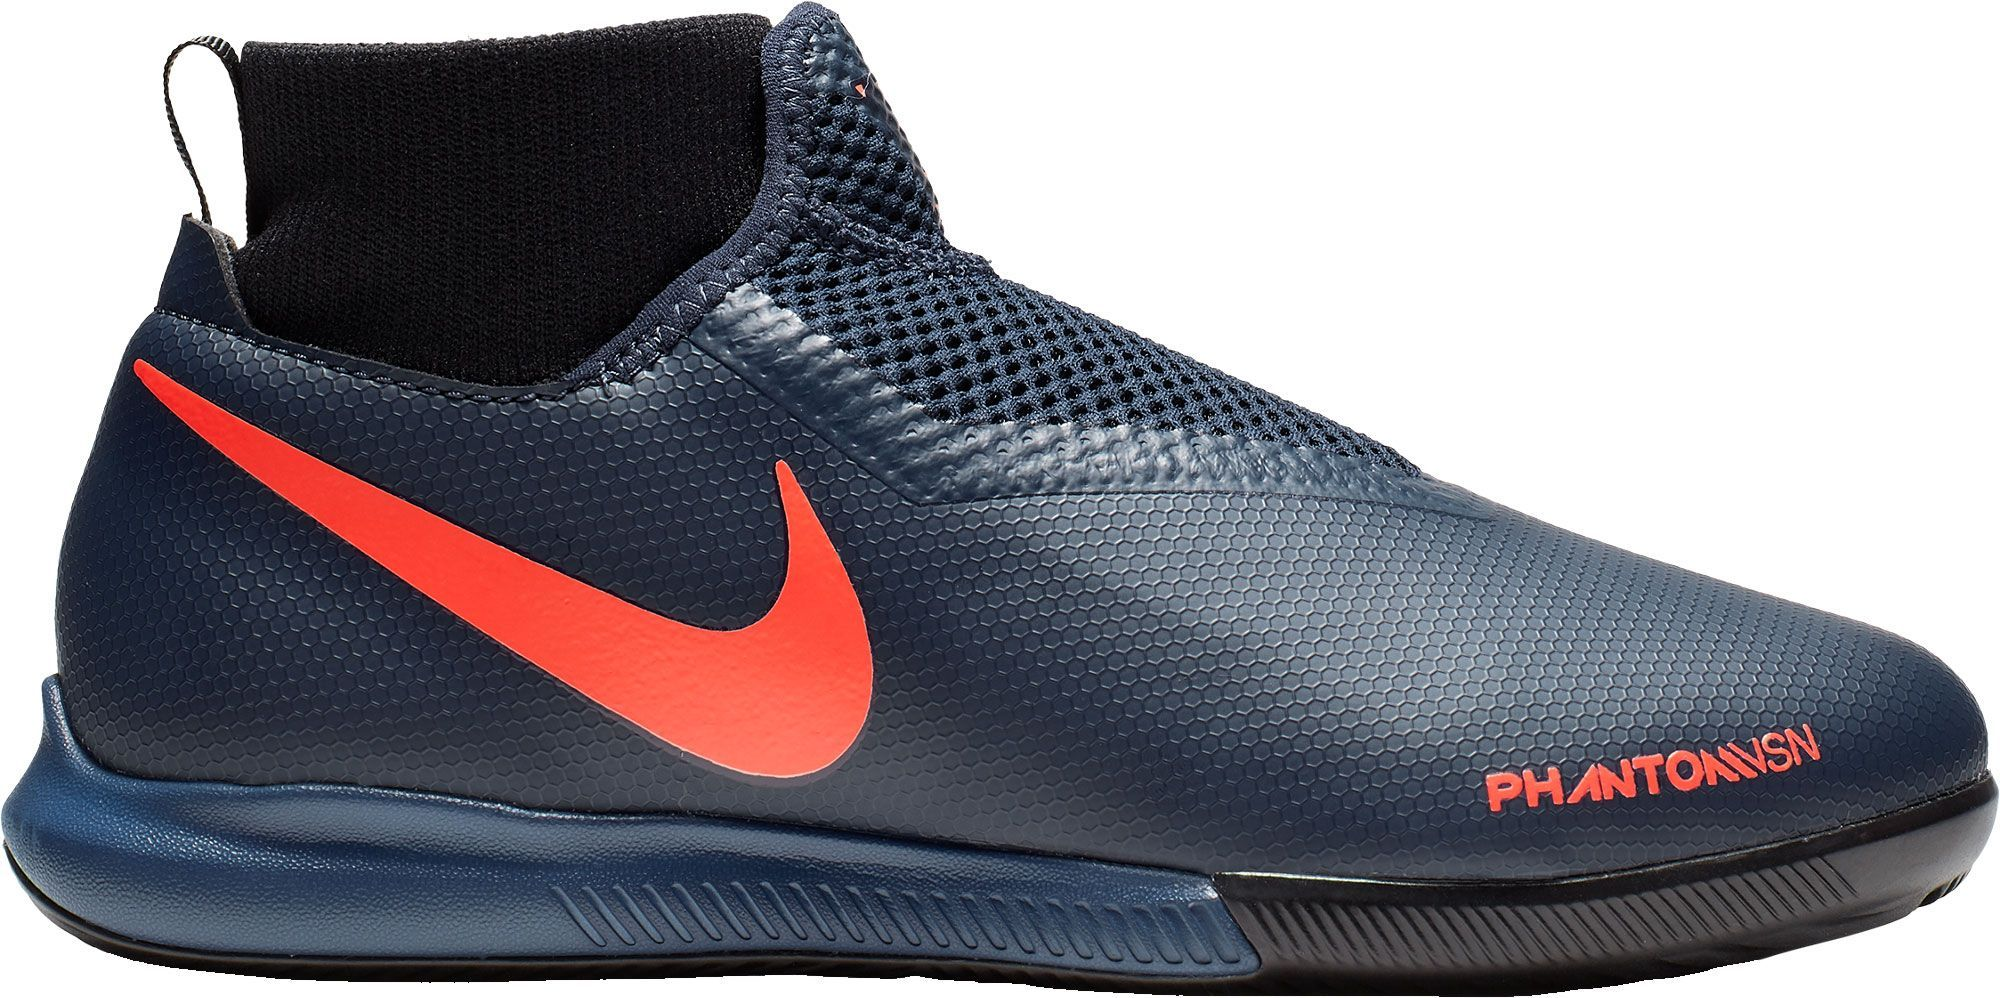 3a4cc7abb76 Nike Kids' Phantom Vision Academy Dynamic Fit Indoor Soccer Shoes in ...